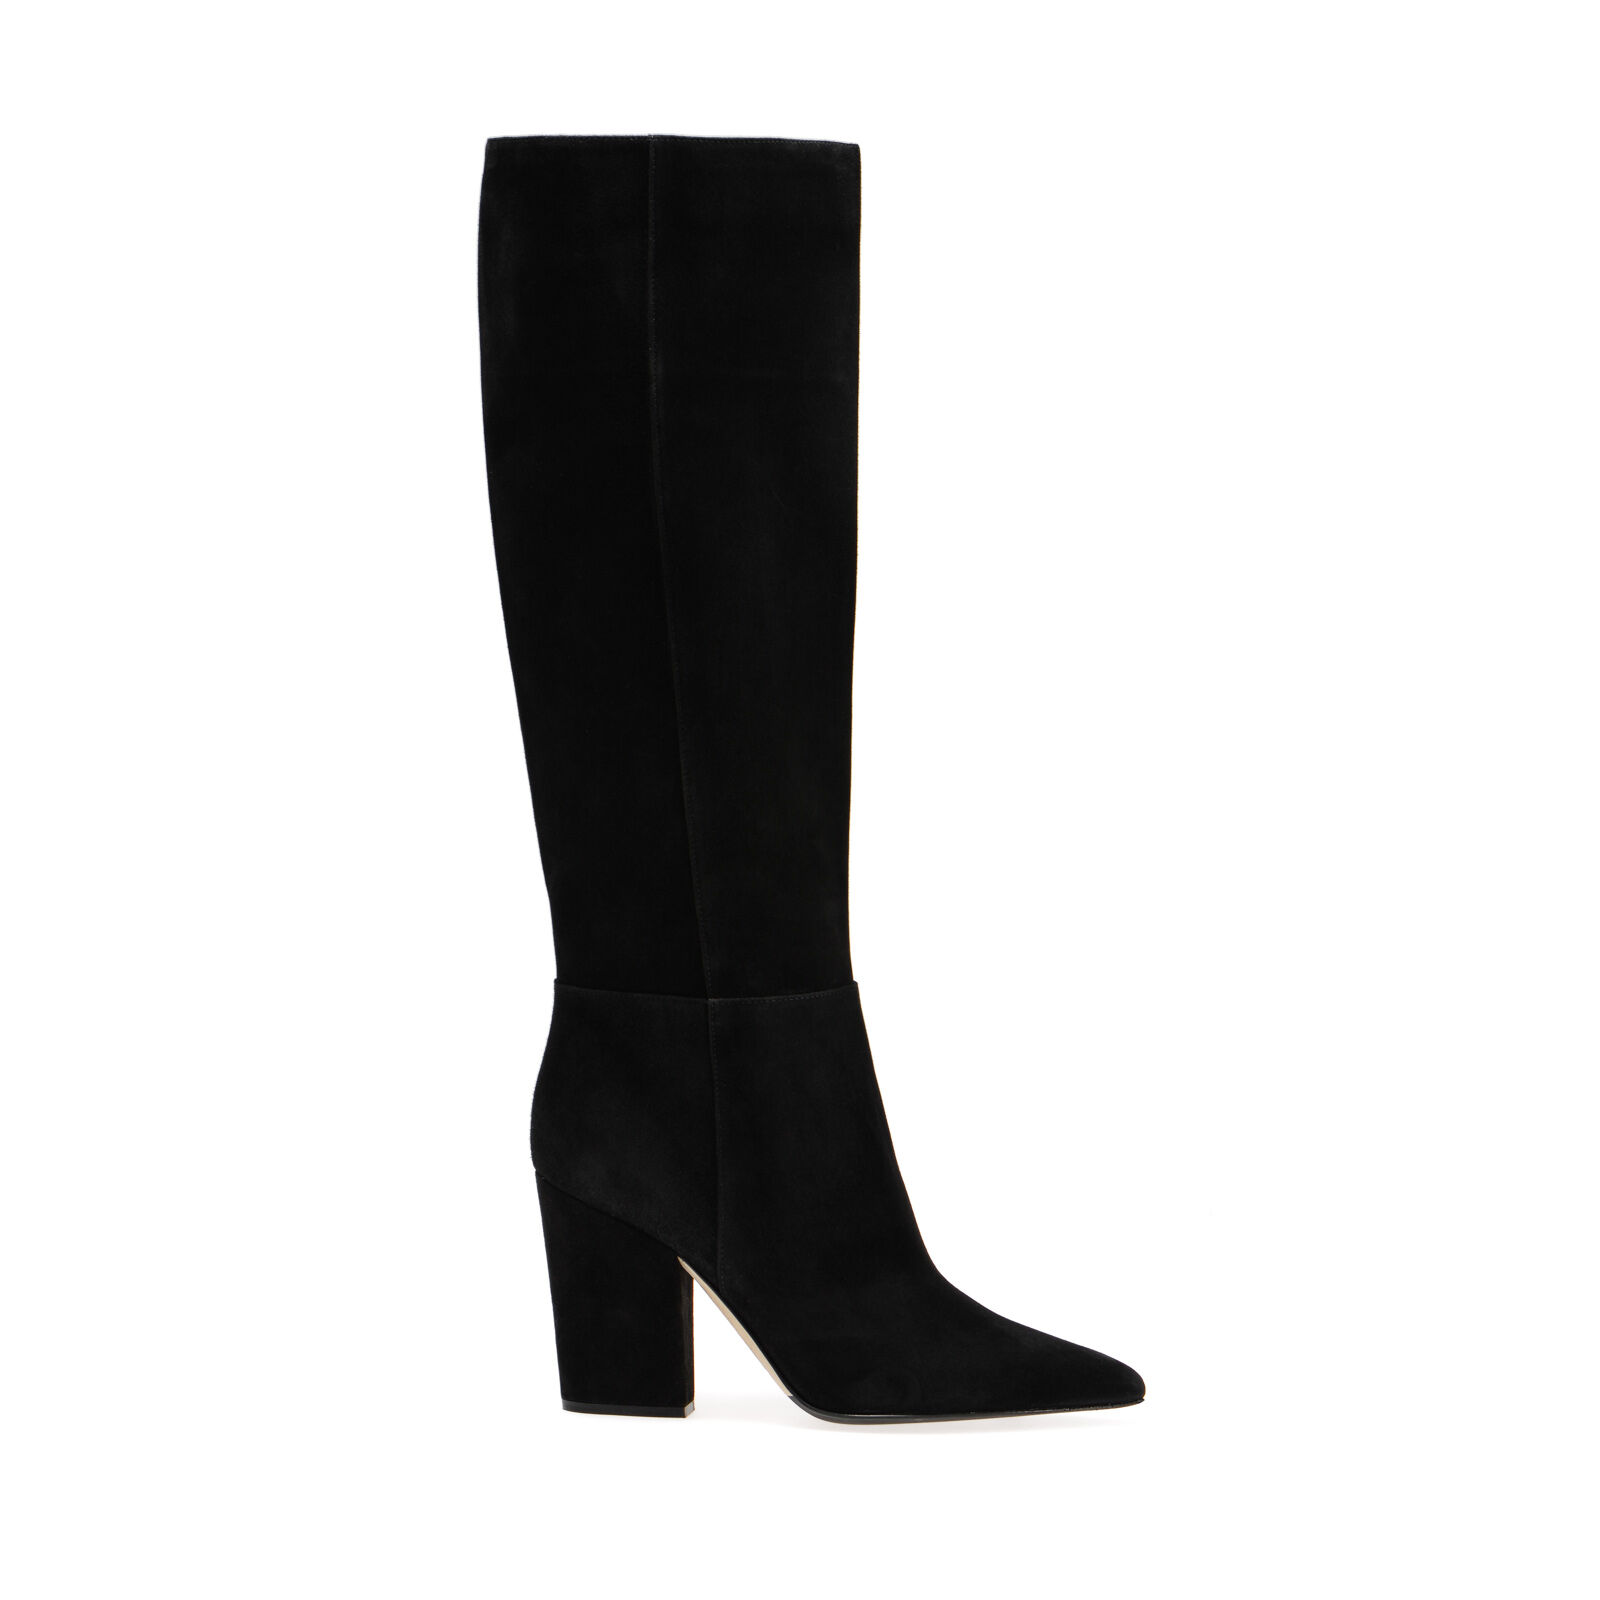 Thigh High Boots: Chic Seduction | Sergio Rossi